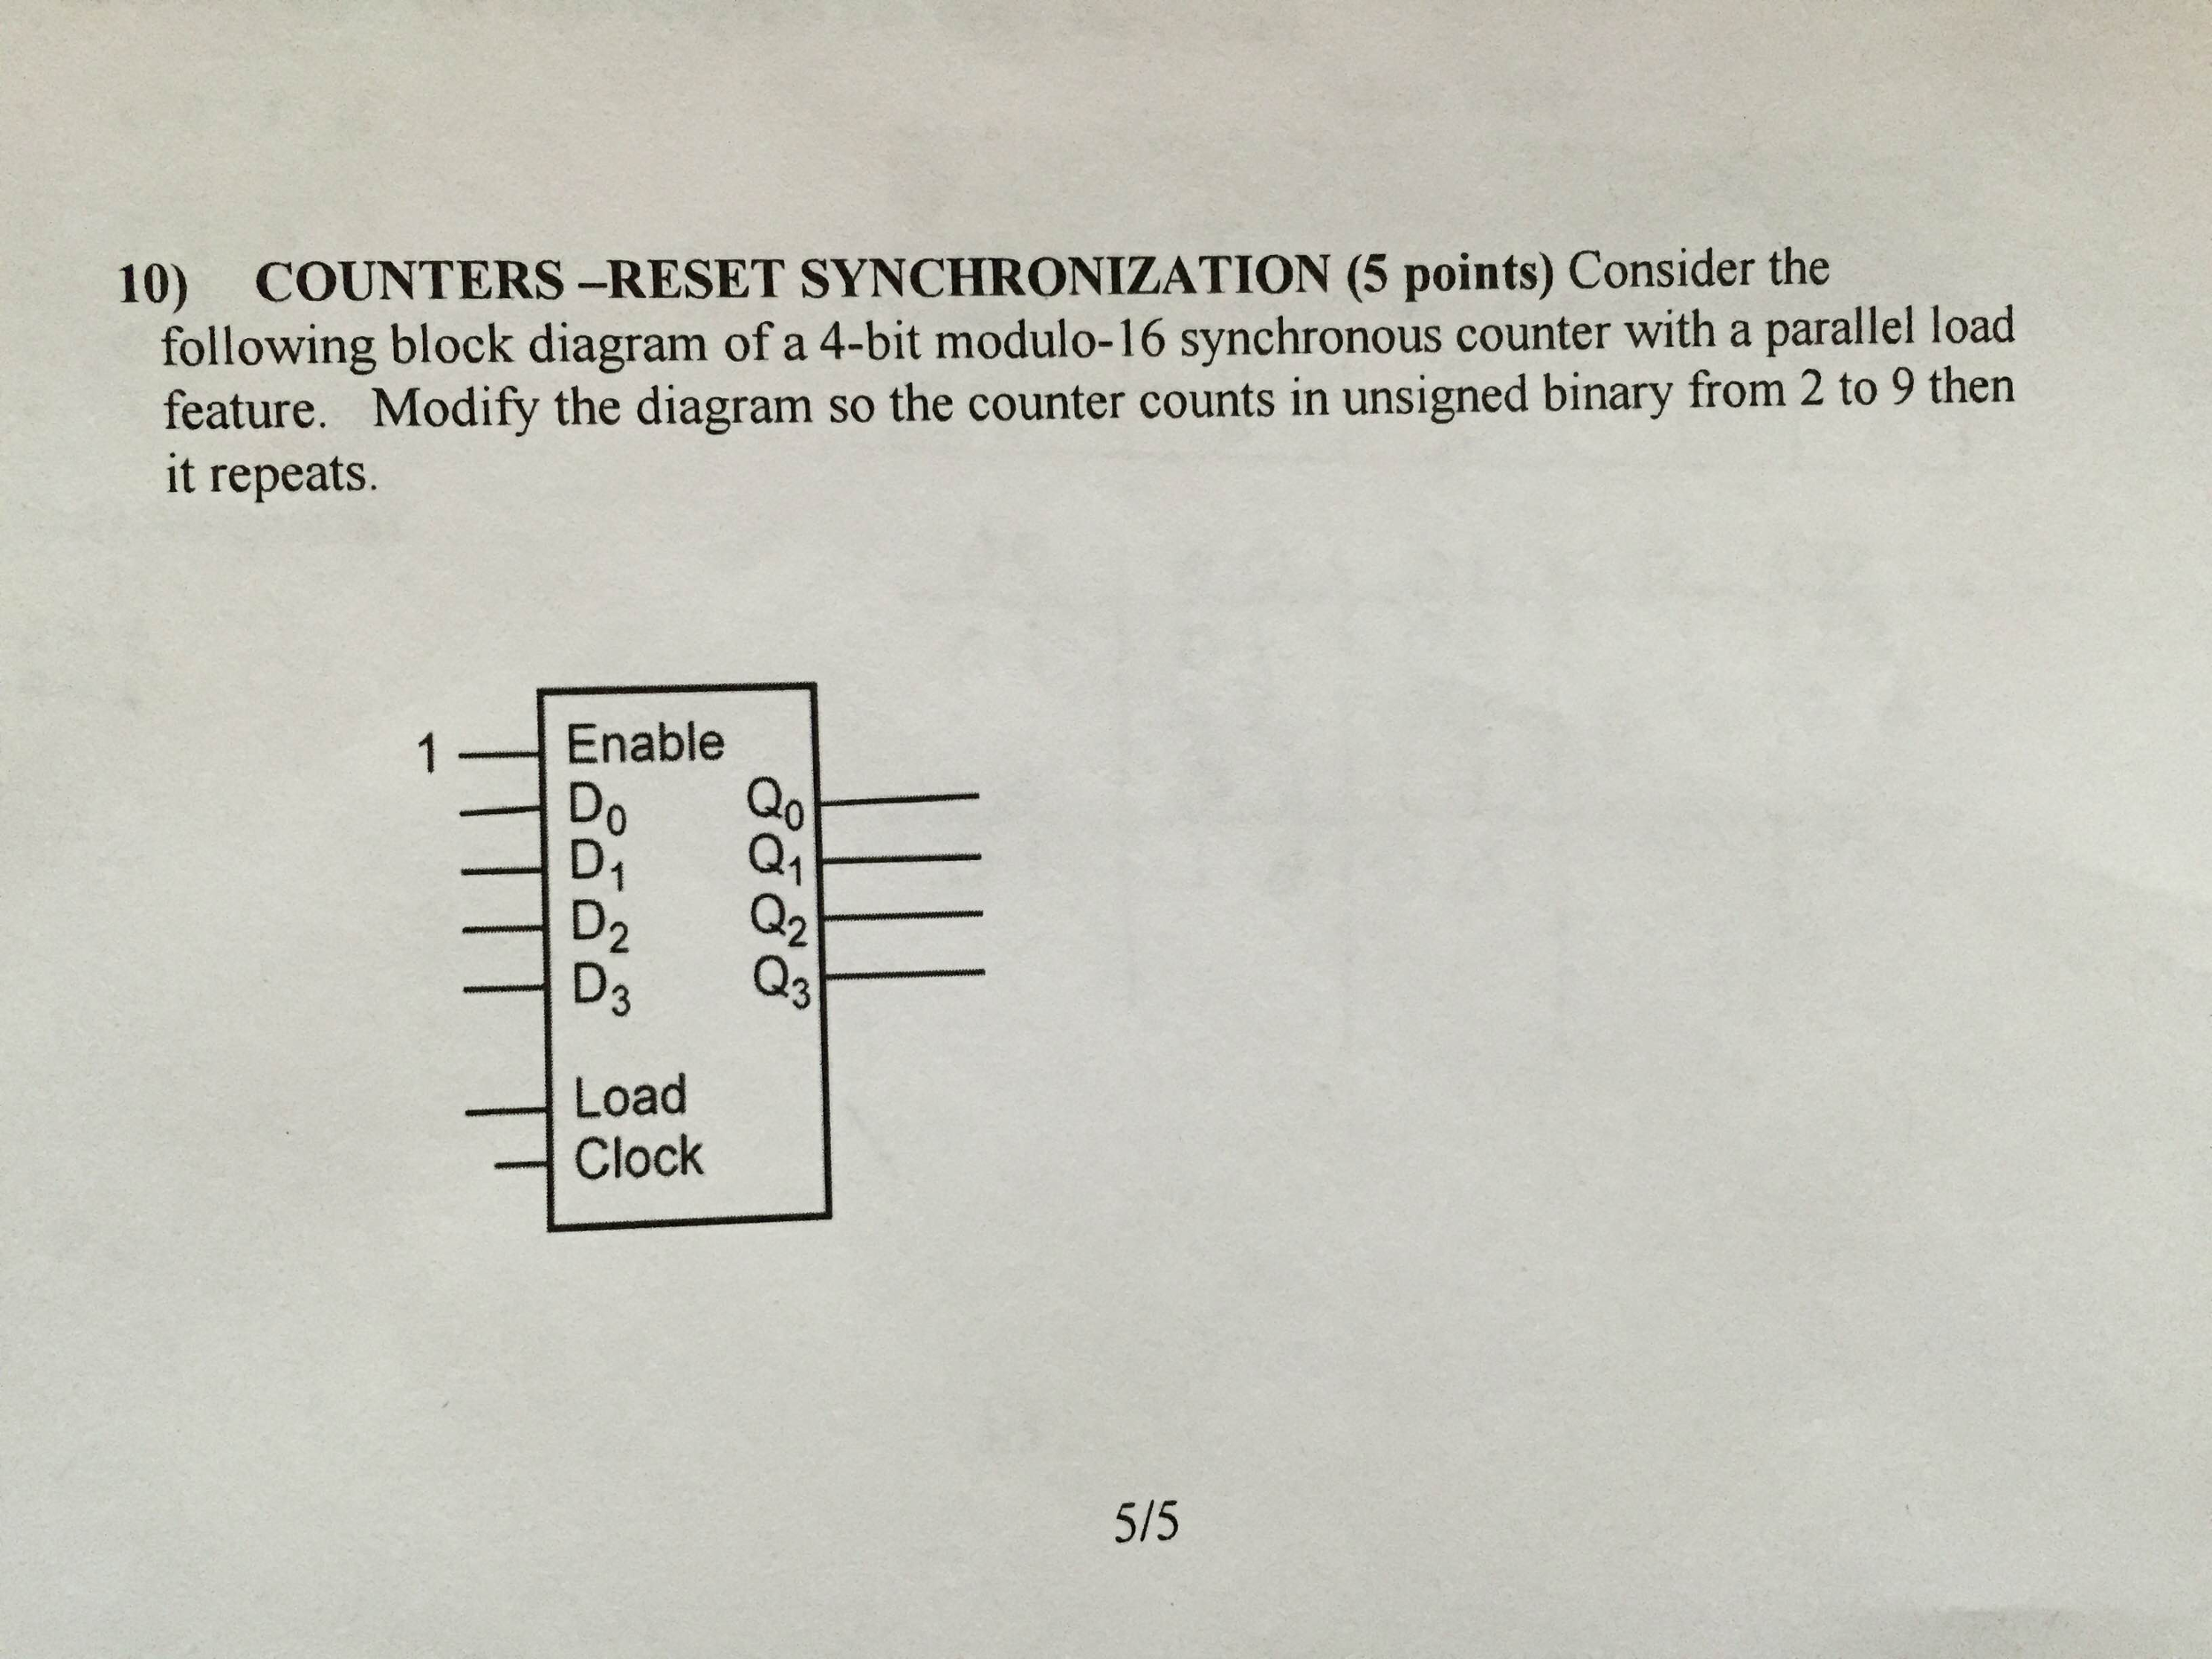 Block Diagram Of 4 Bit Synchronous Countert Wiring Library Quartus 2 Counters Reset Synchronization Consider The Follo